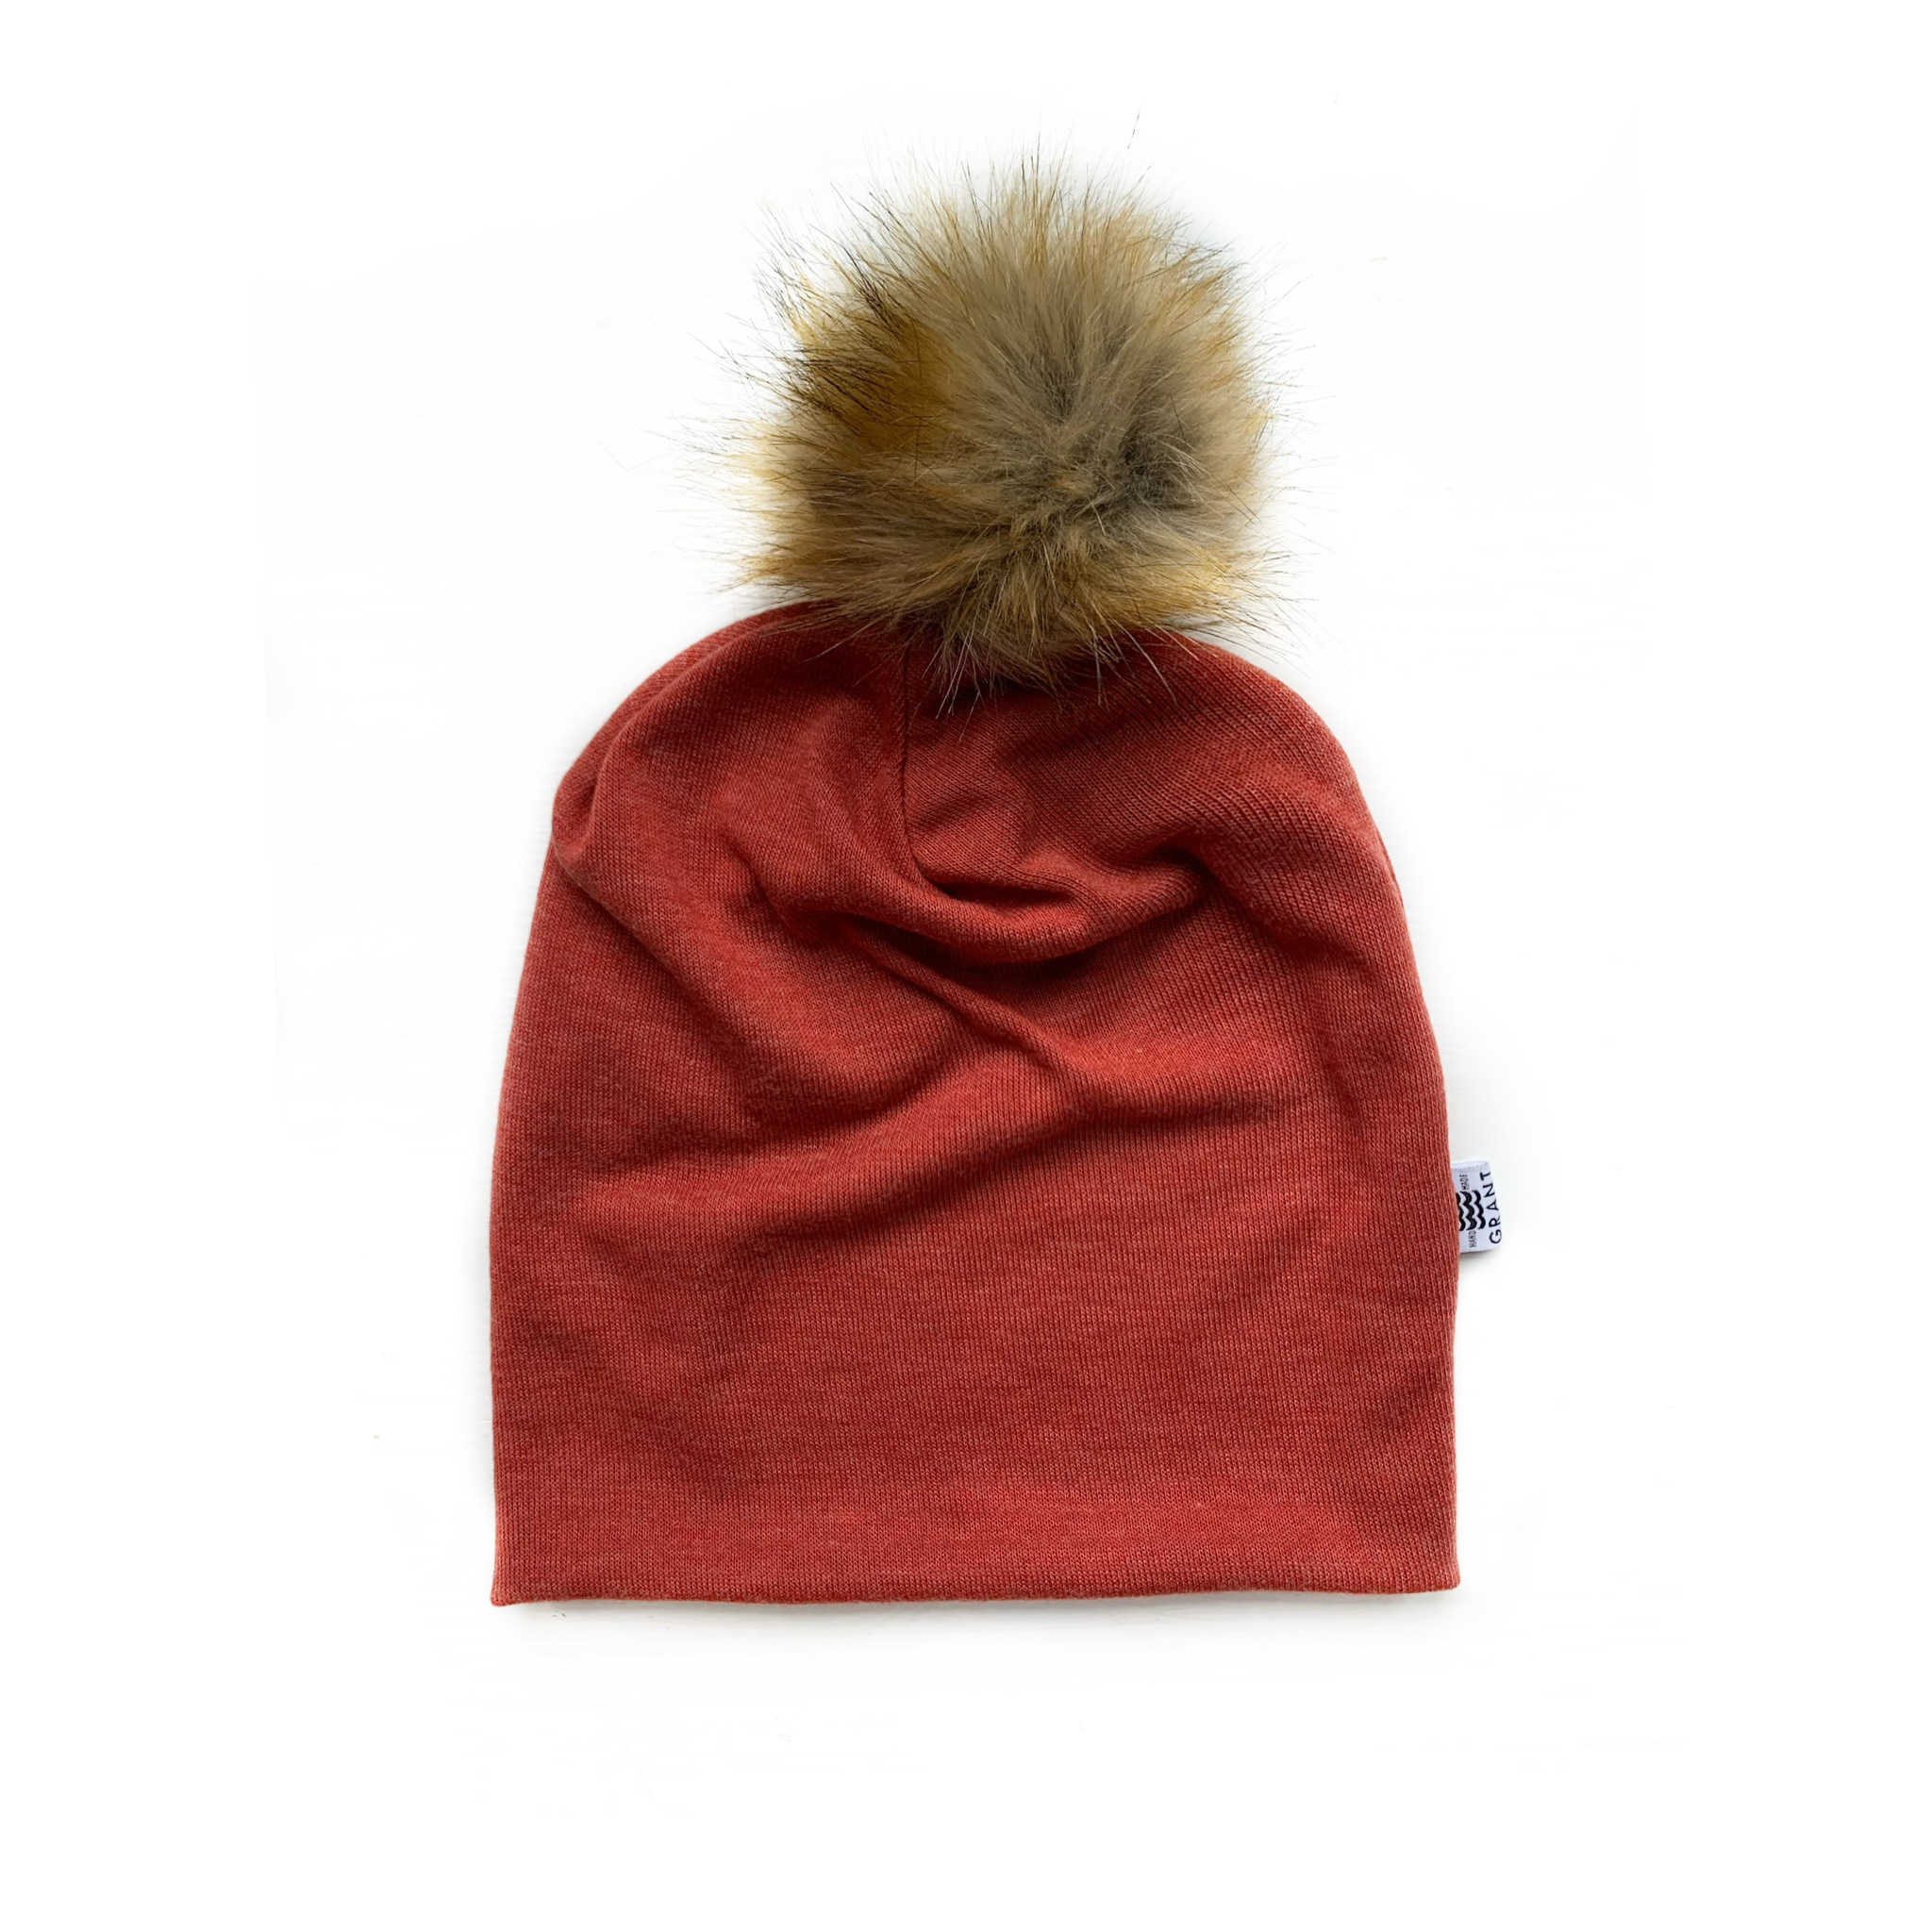 Slouchy Pom Beanie in Heather Russet